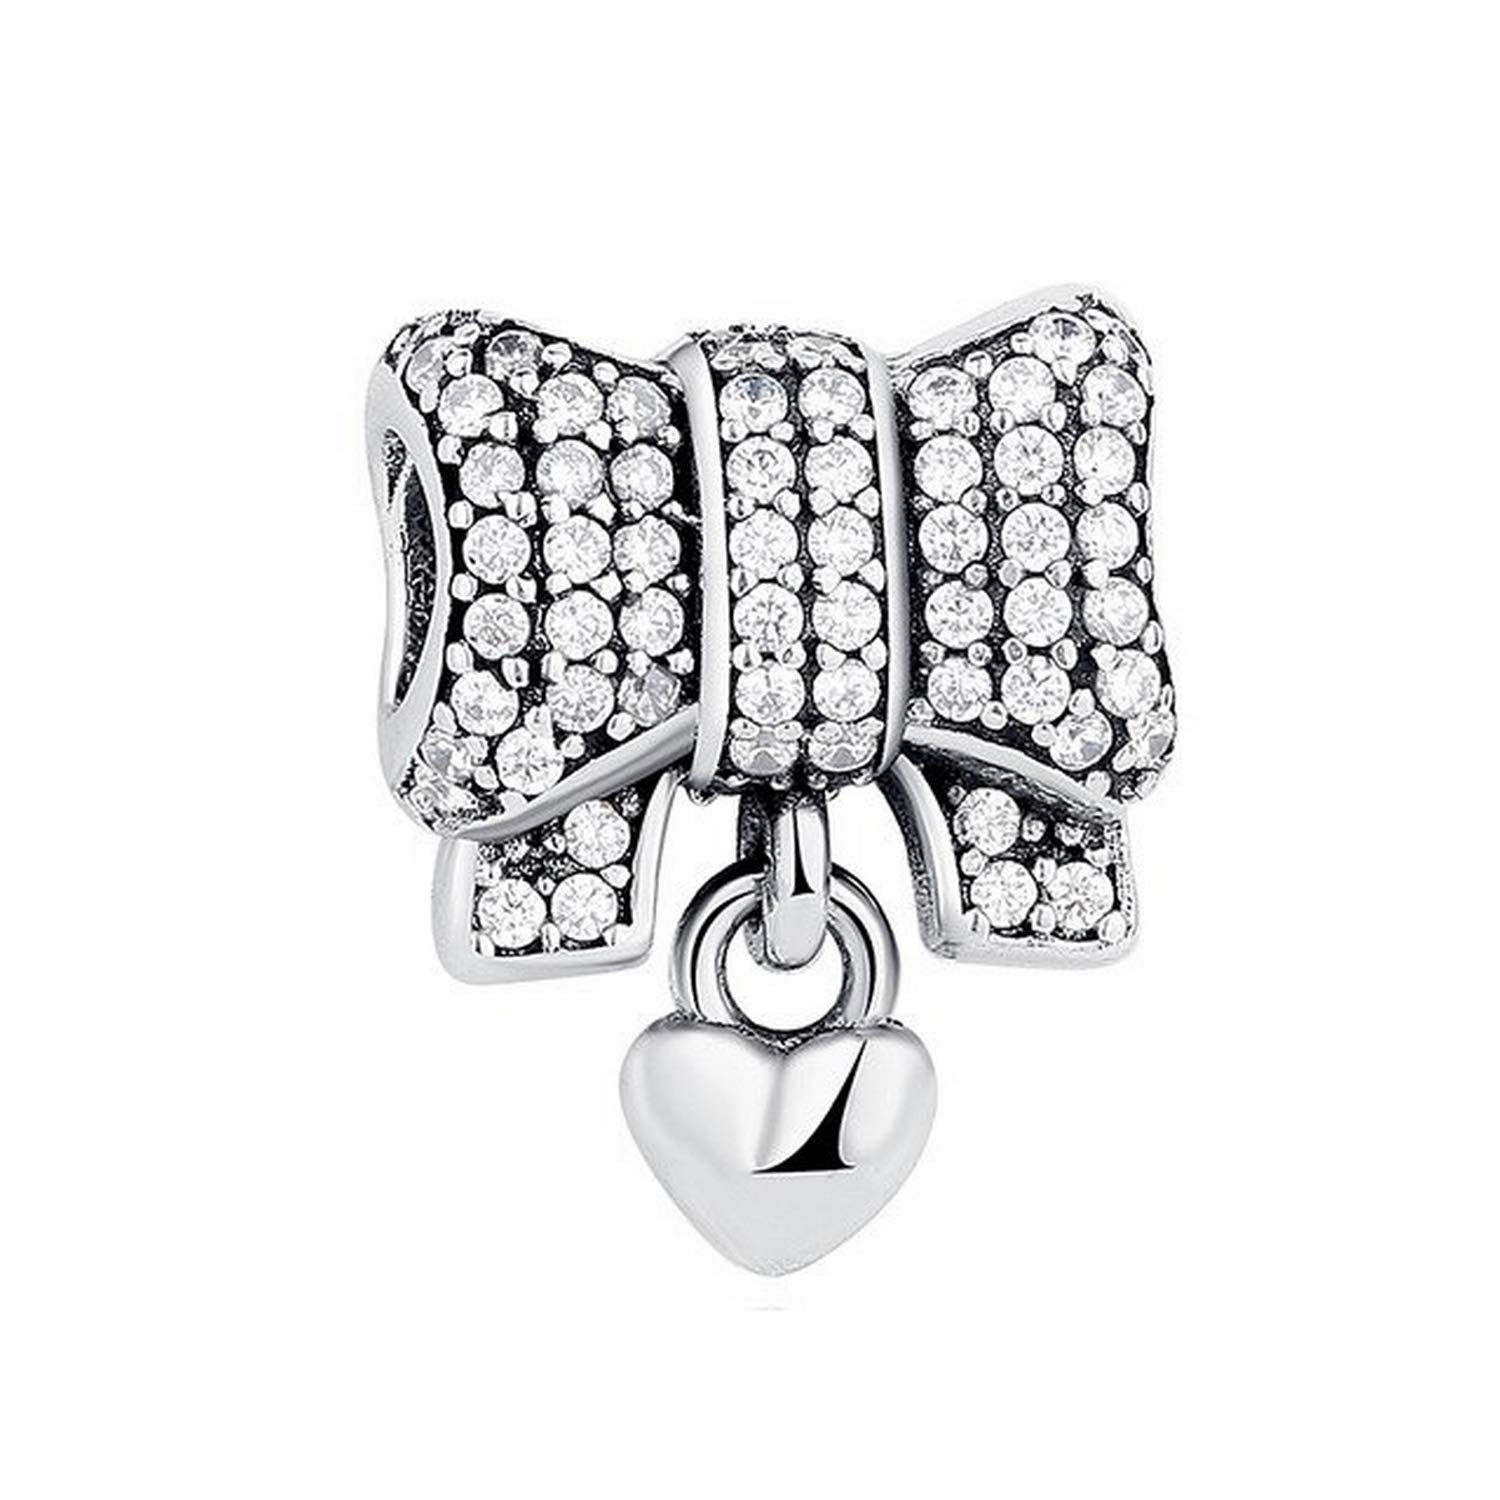 Evereena Silver Beads Bracelet for Girls Heart Gift /& Bow Charms Fit Original Womens Jewelry